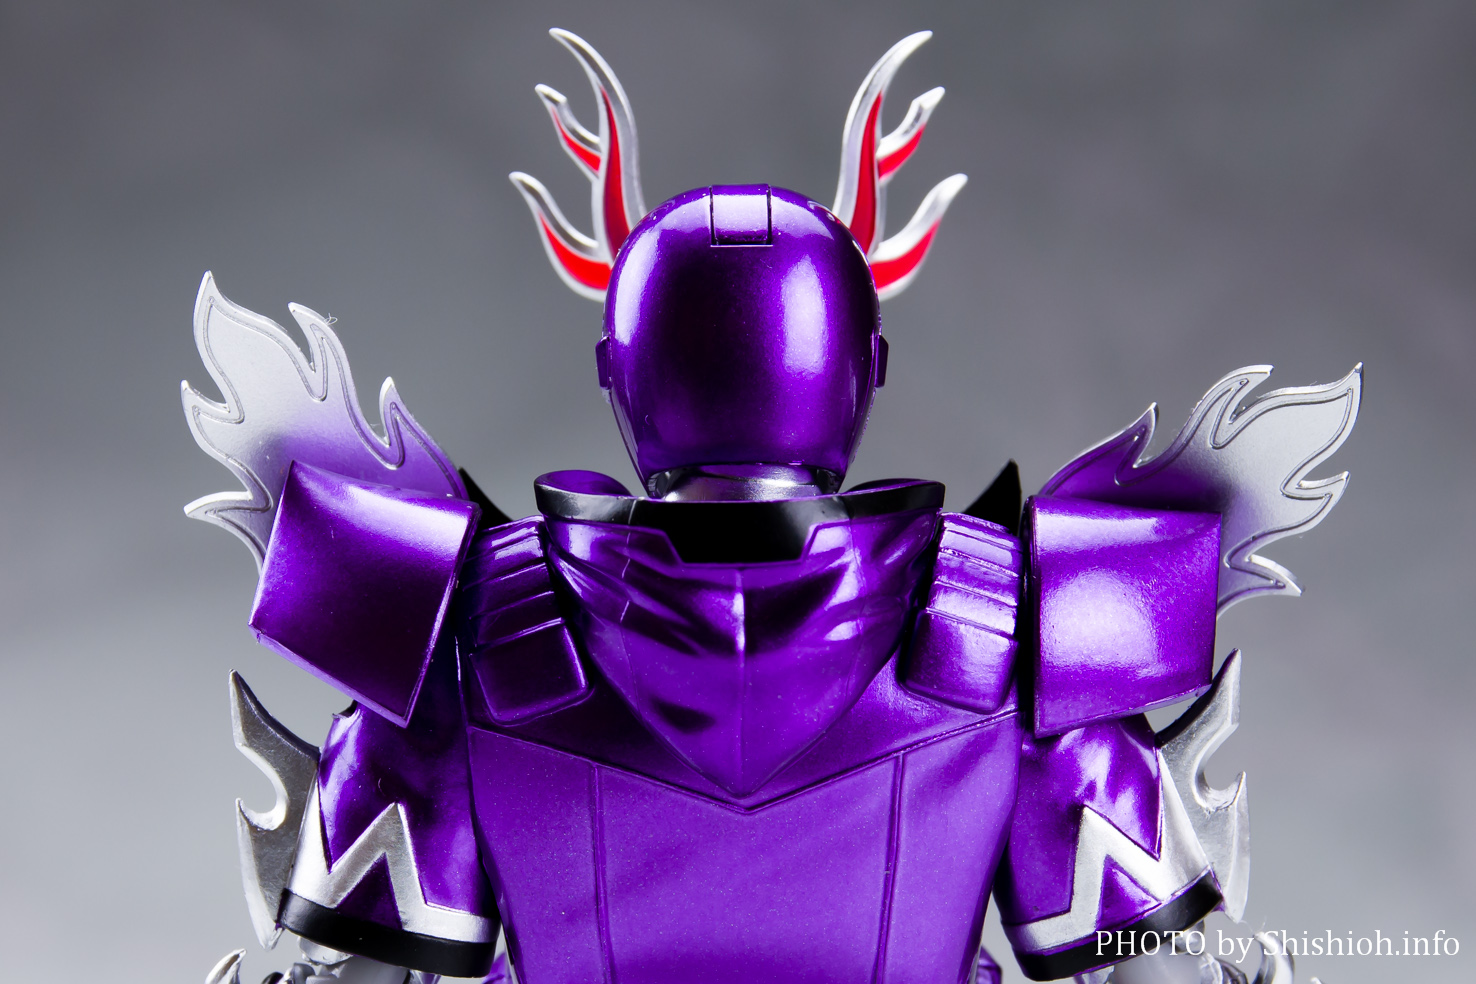 S.H.Figuarts 仮面ライダーディープスペクター